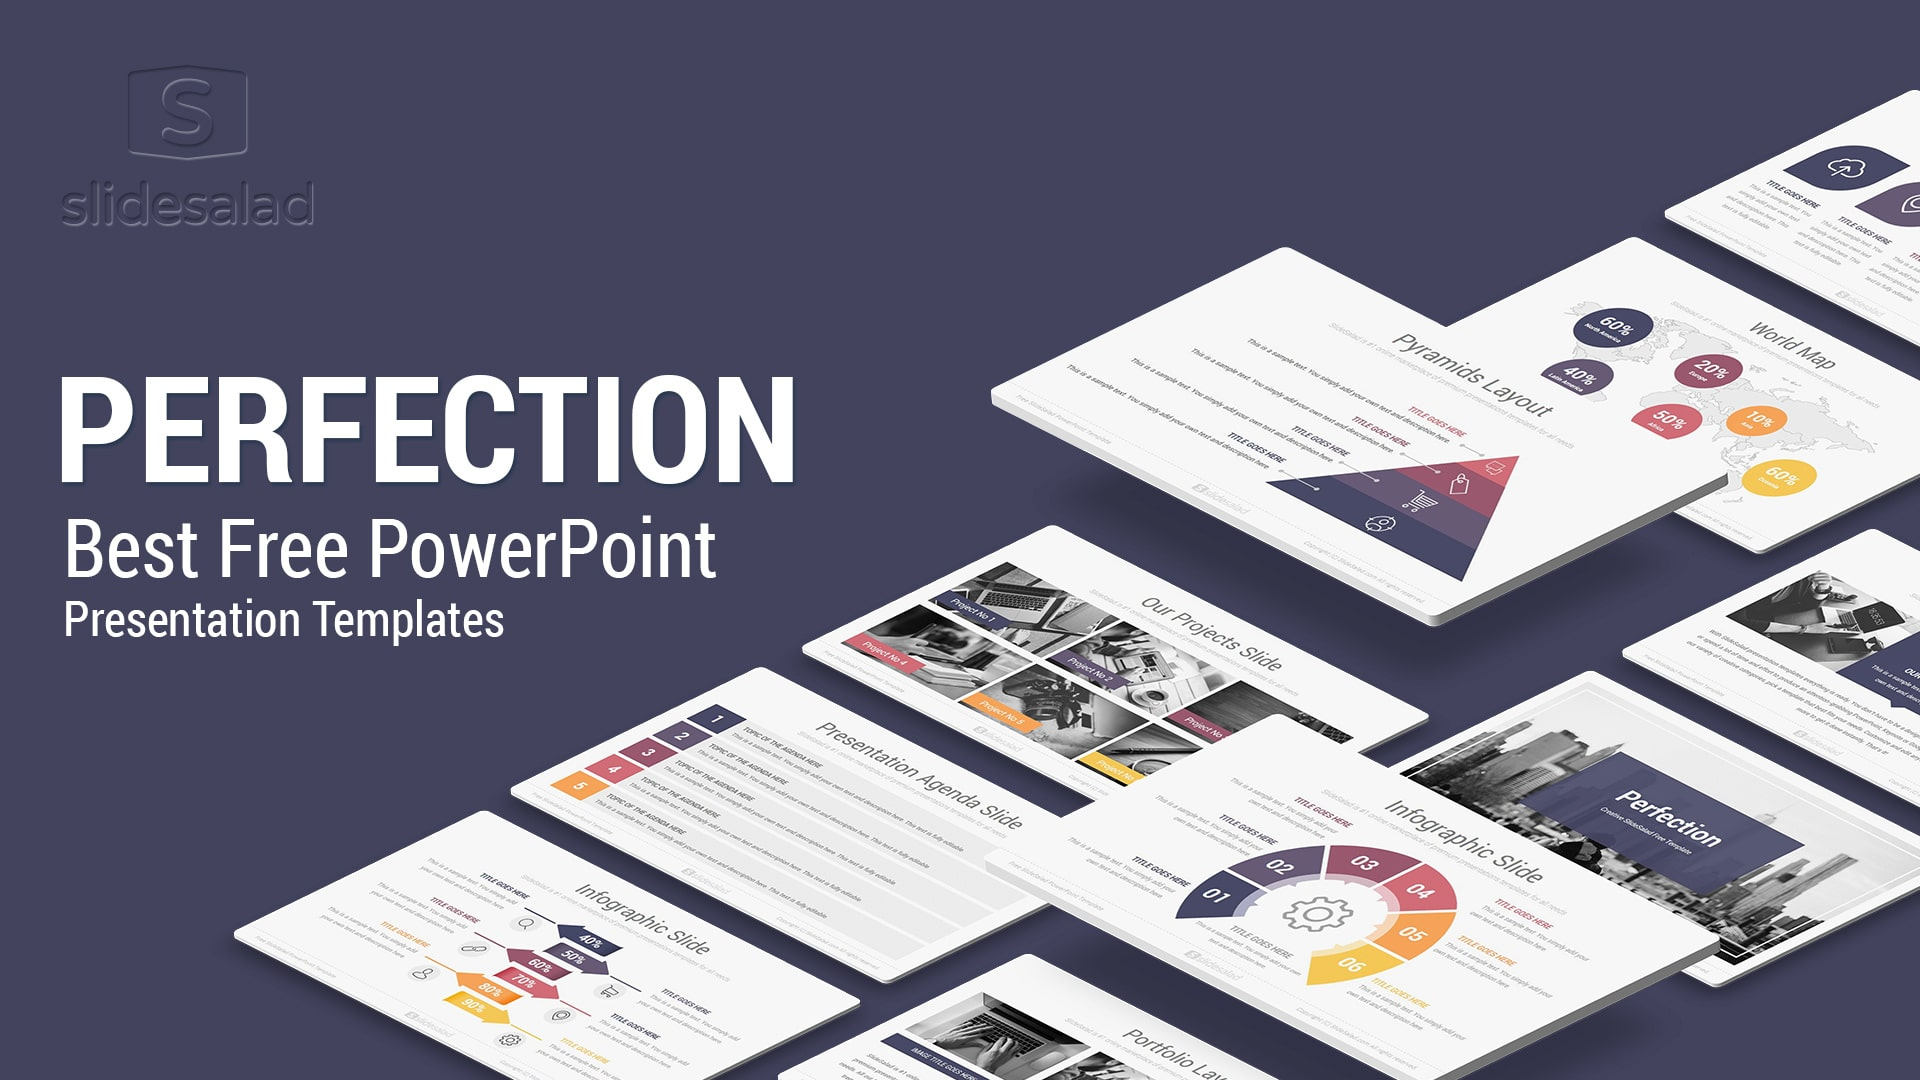 Perfection – Best Free PowerPoint Template for Perfectionists